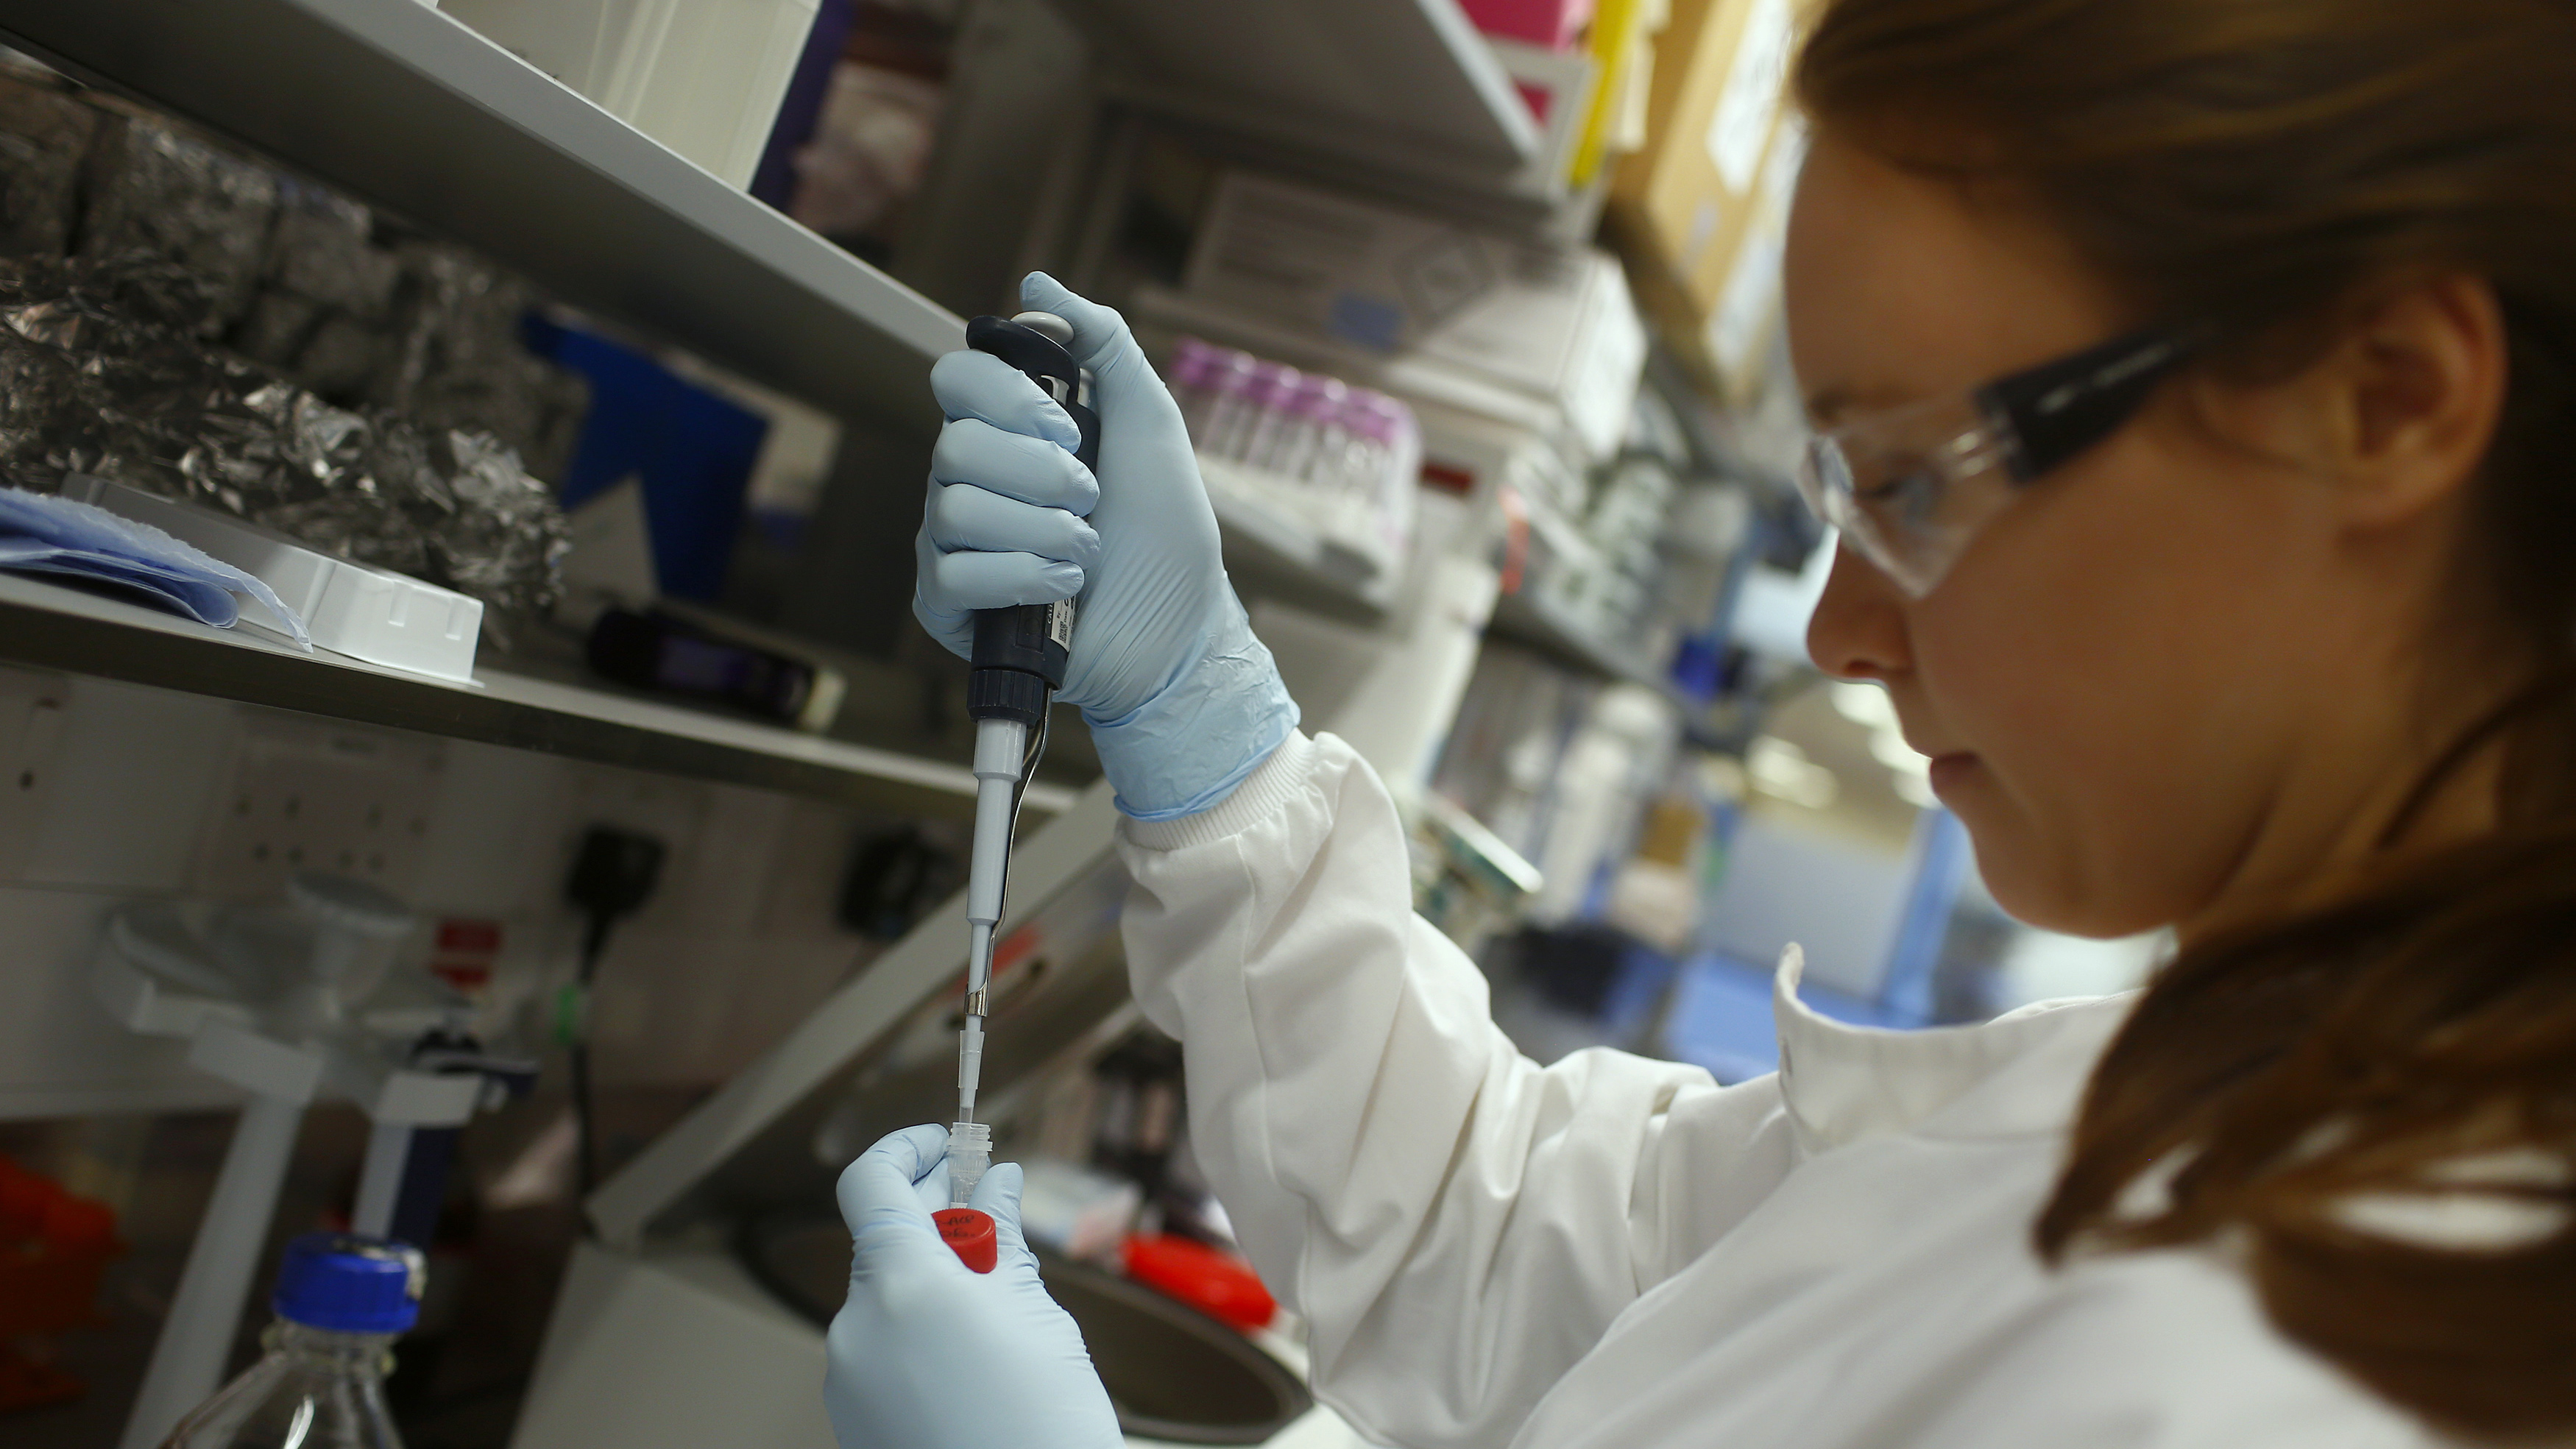 Research assistant Georgina Bowyer works on a vaccine for Ebola at the Jenner Institute in Oxford, England, on January 16, 2015.